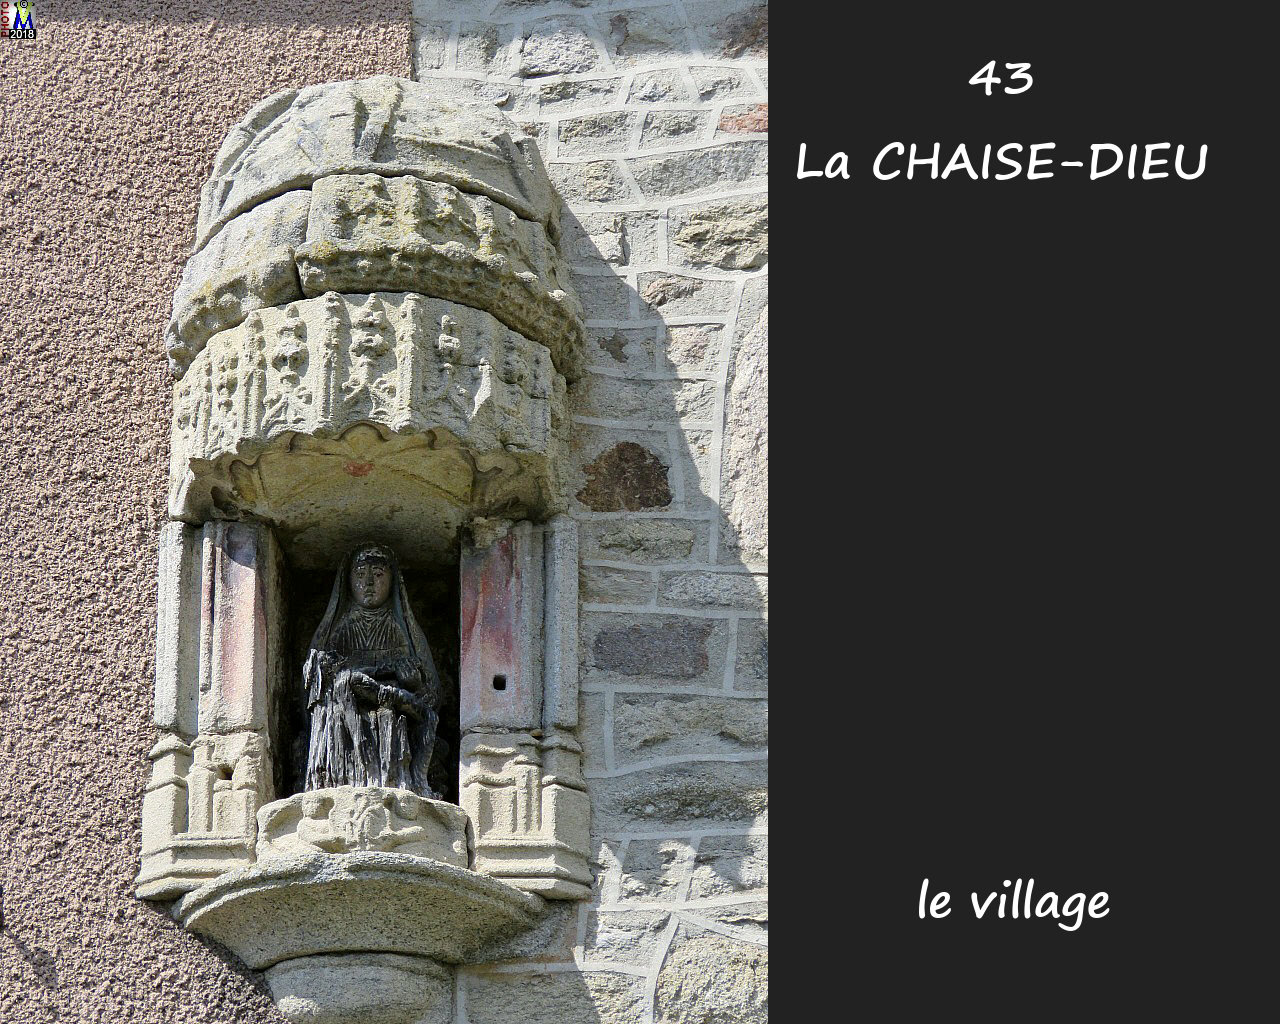 43CHAISE-DIEU_village_160.jpg